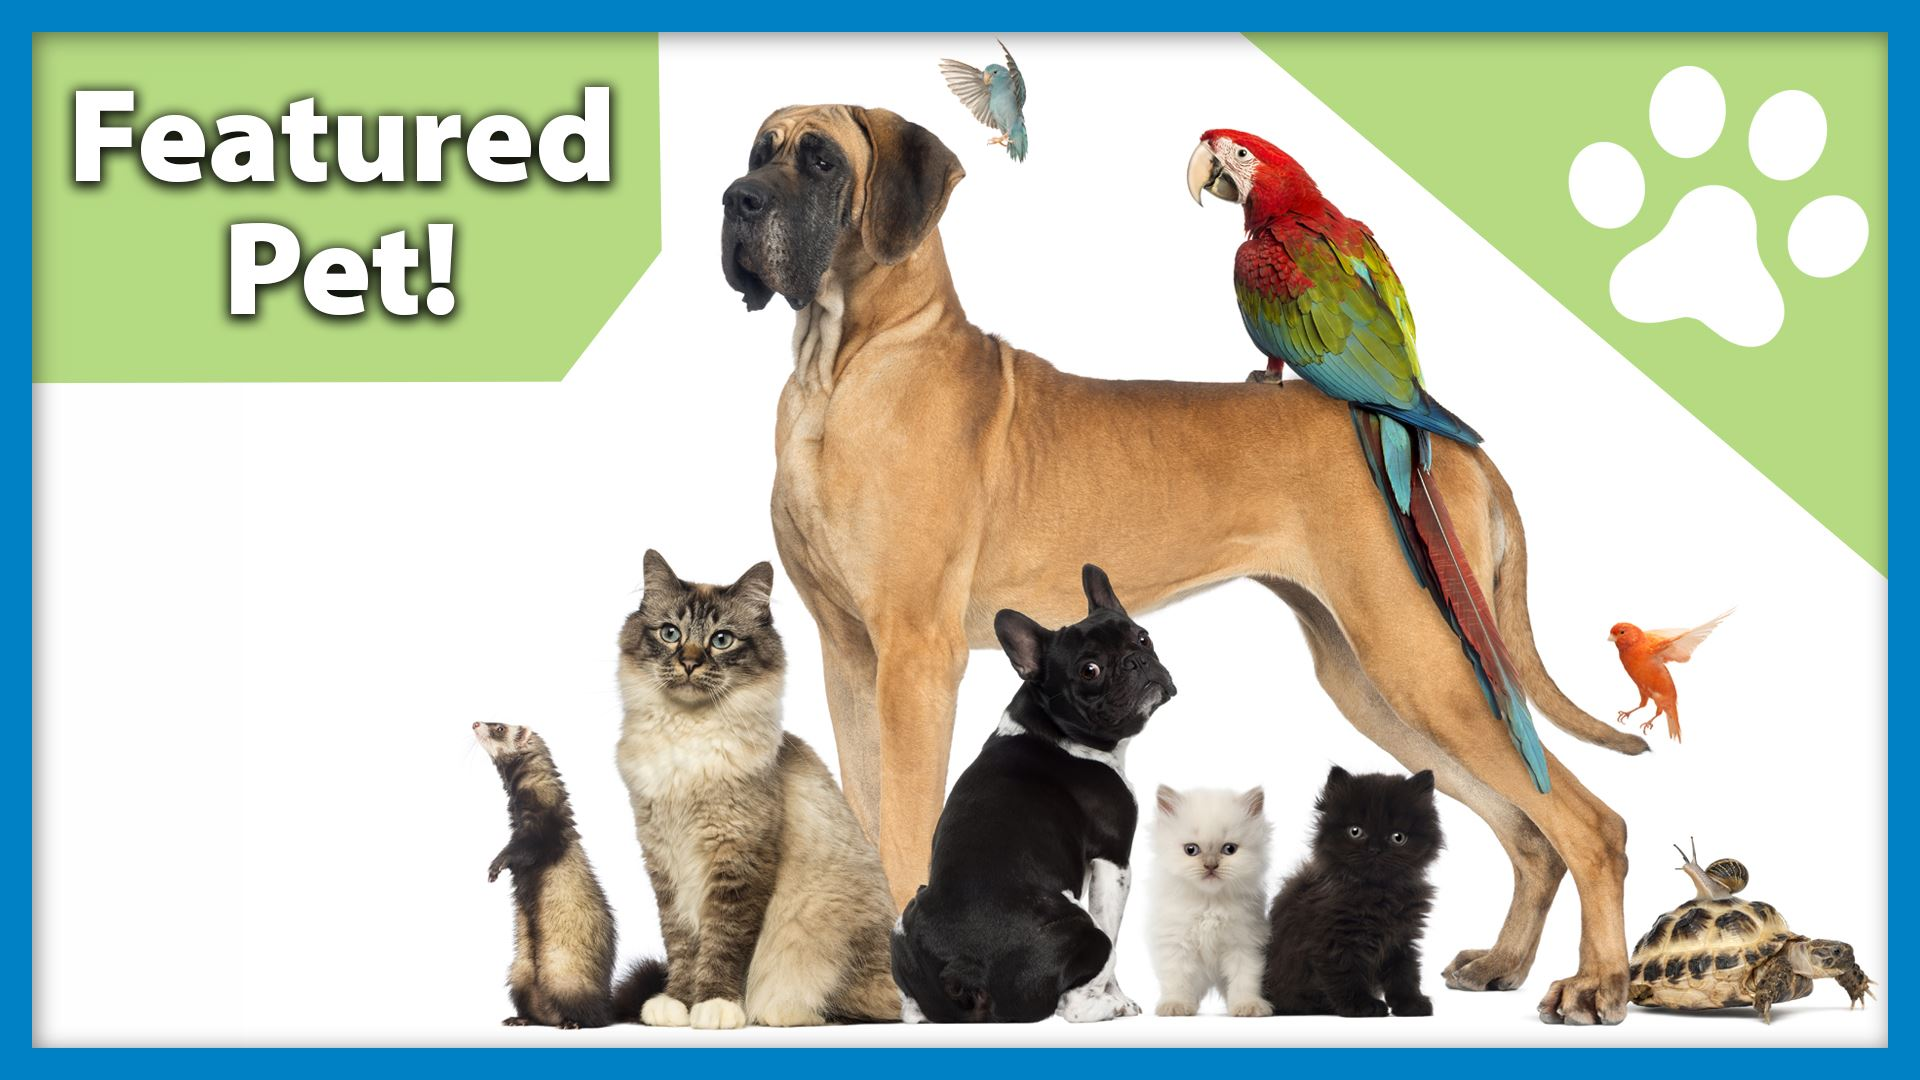 Pet of the Week graphic